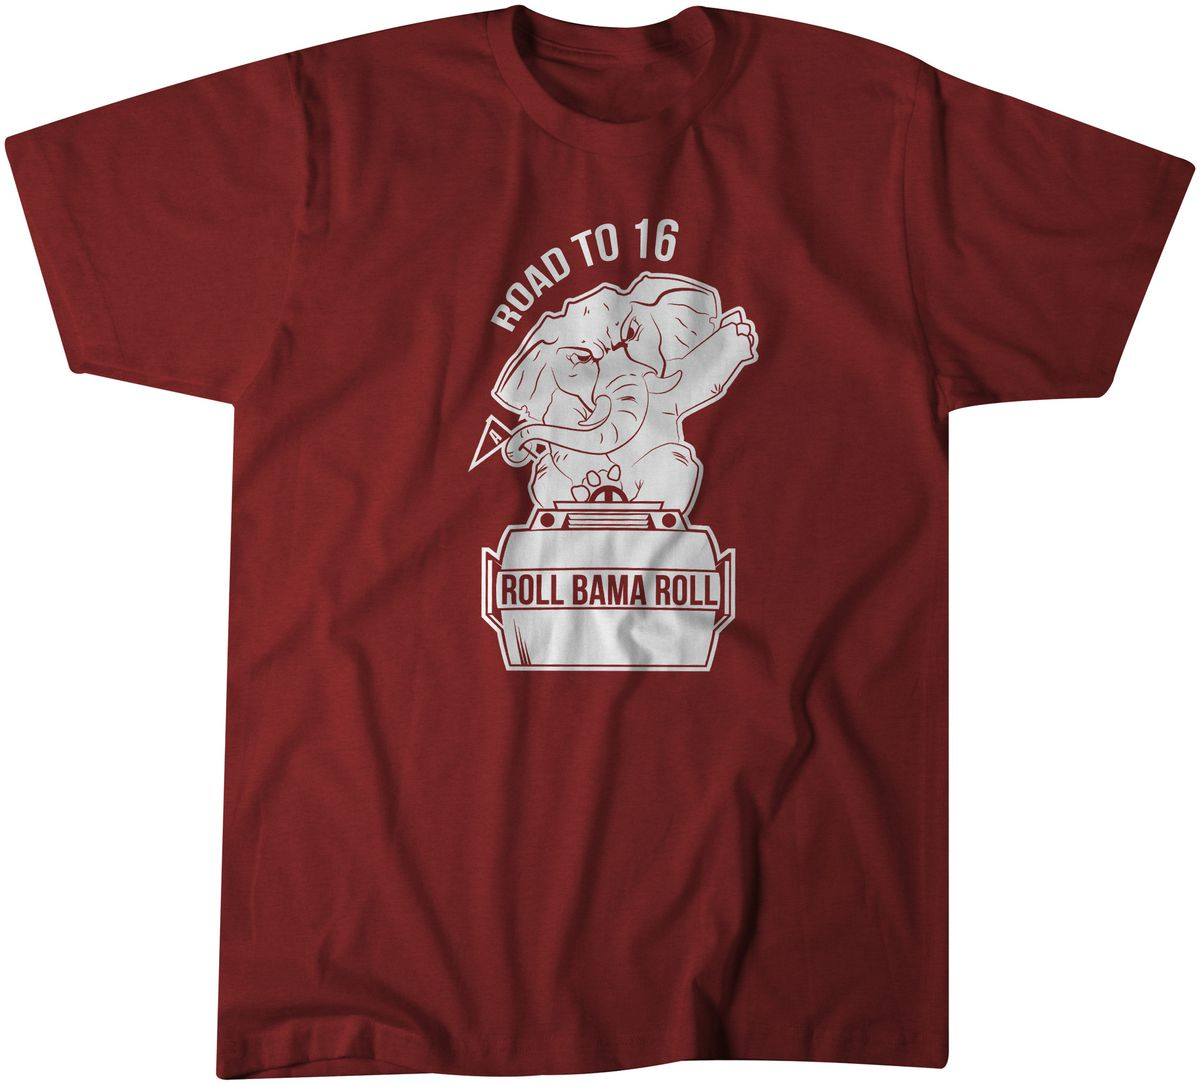 Roadto16 national championship t shirts are here roll Alabama sec championship shirt